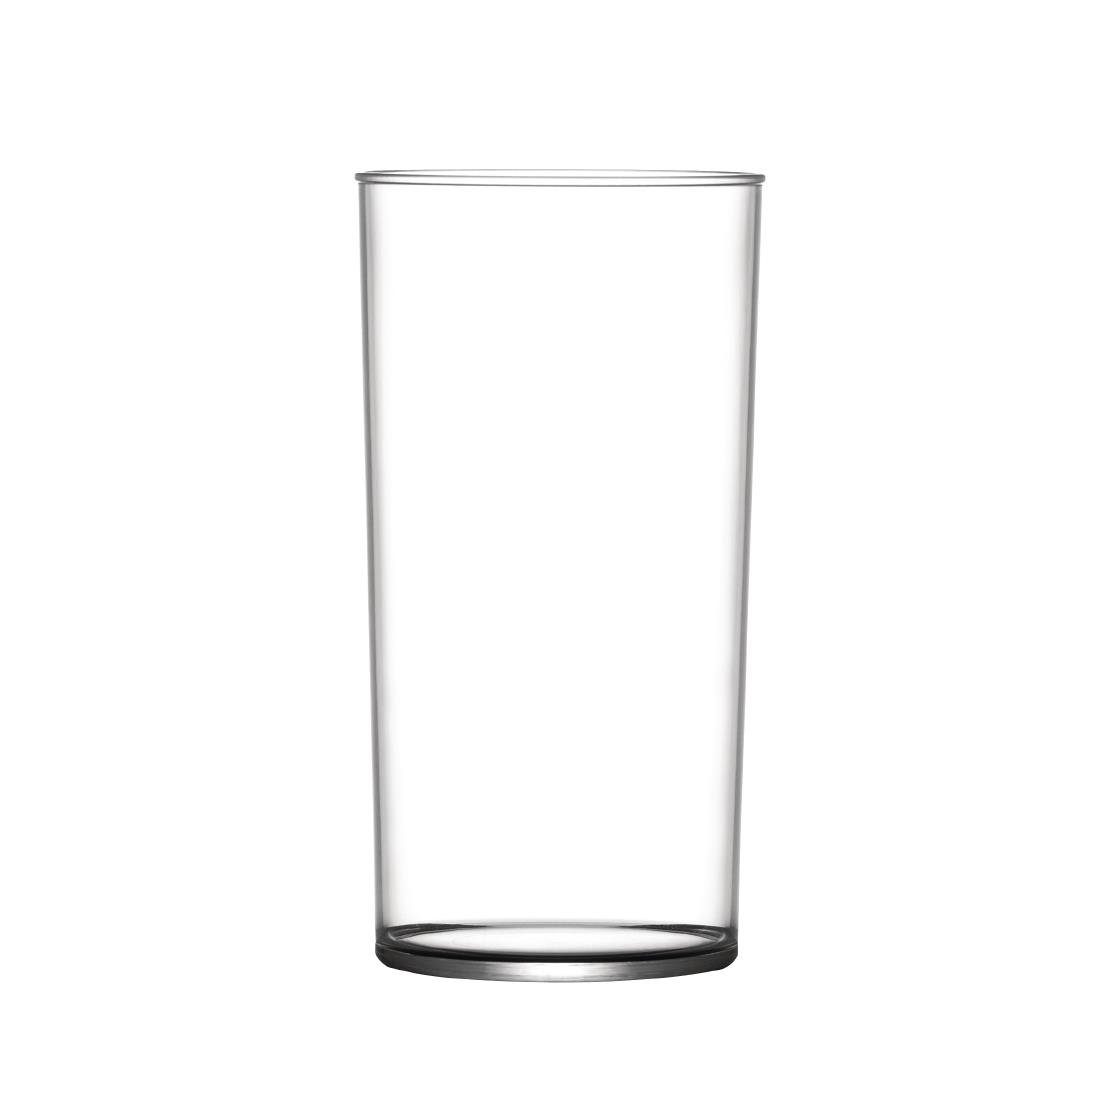 Image of BBP Polycarbonate Hi Ball Glasses 285ml CE Marked (Pack of 48) Pack of 48